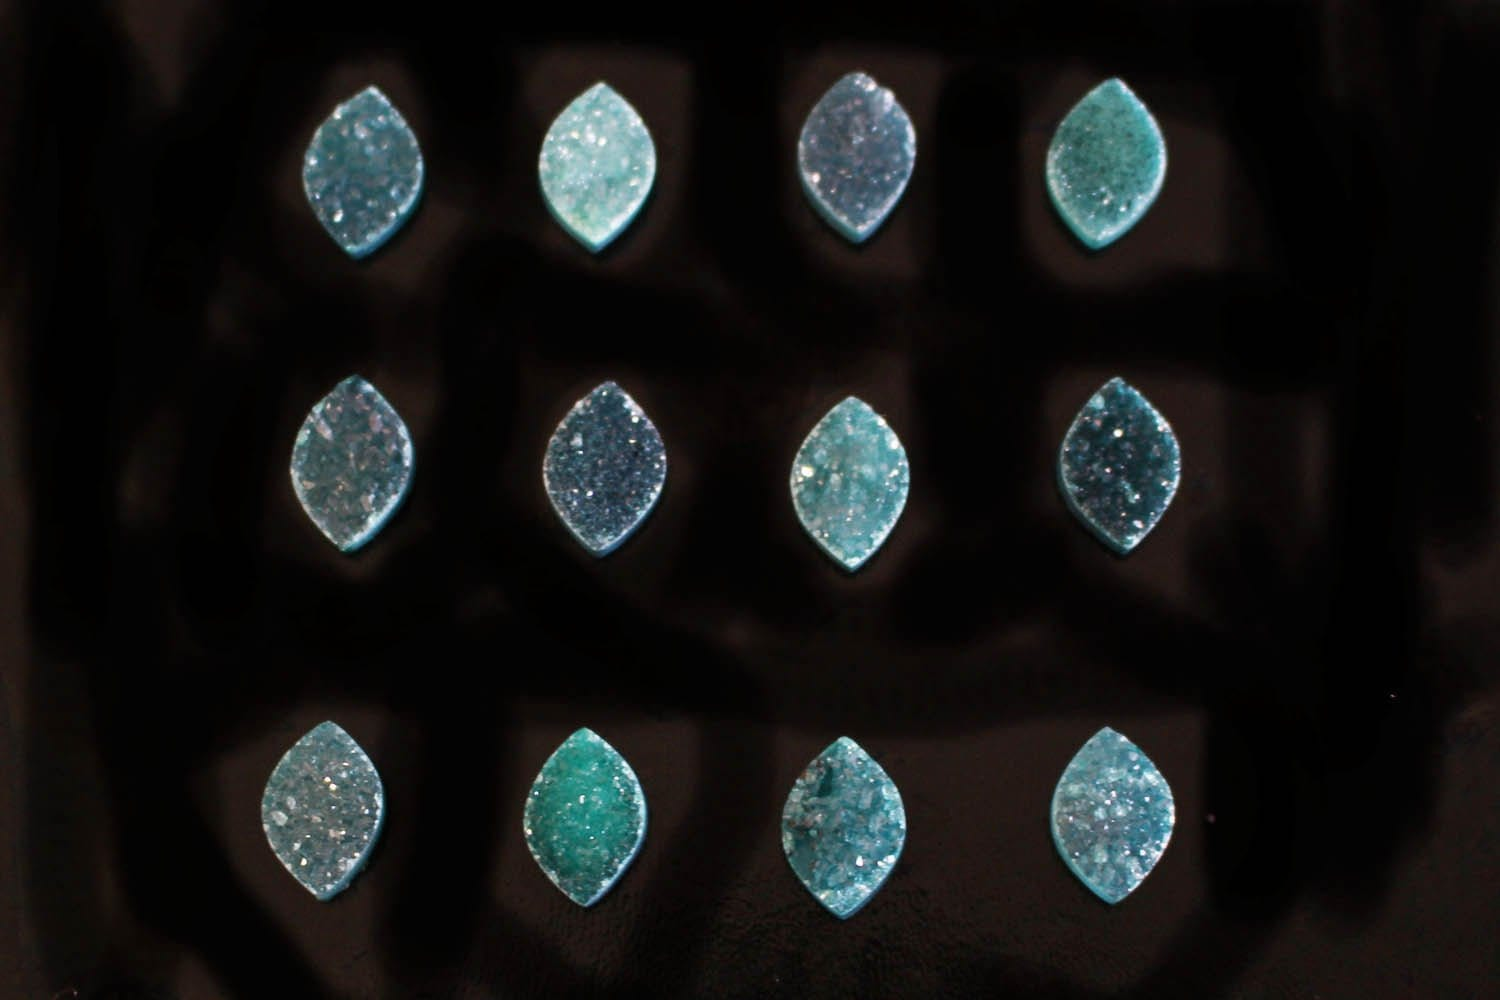 Cabochon - Green Marquise Druzy Cabochon - Colorful Druzy Stone - Craft Supply - Perfect For Jewelry Making